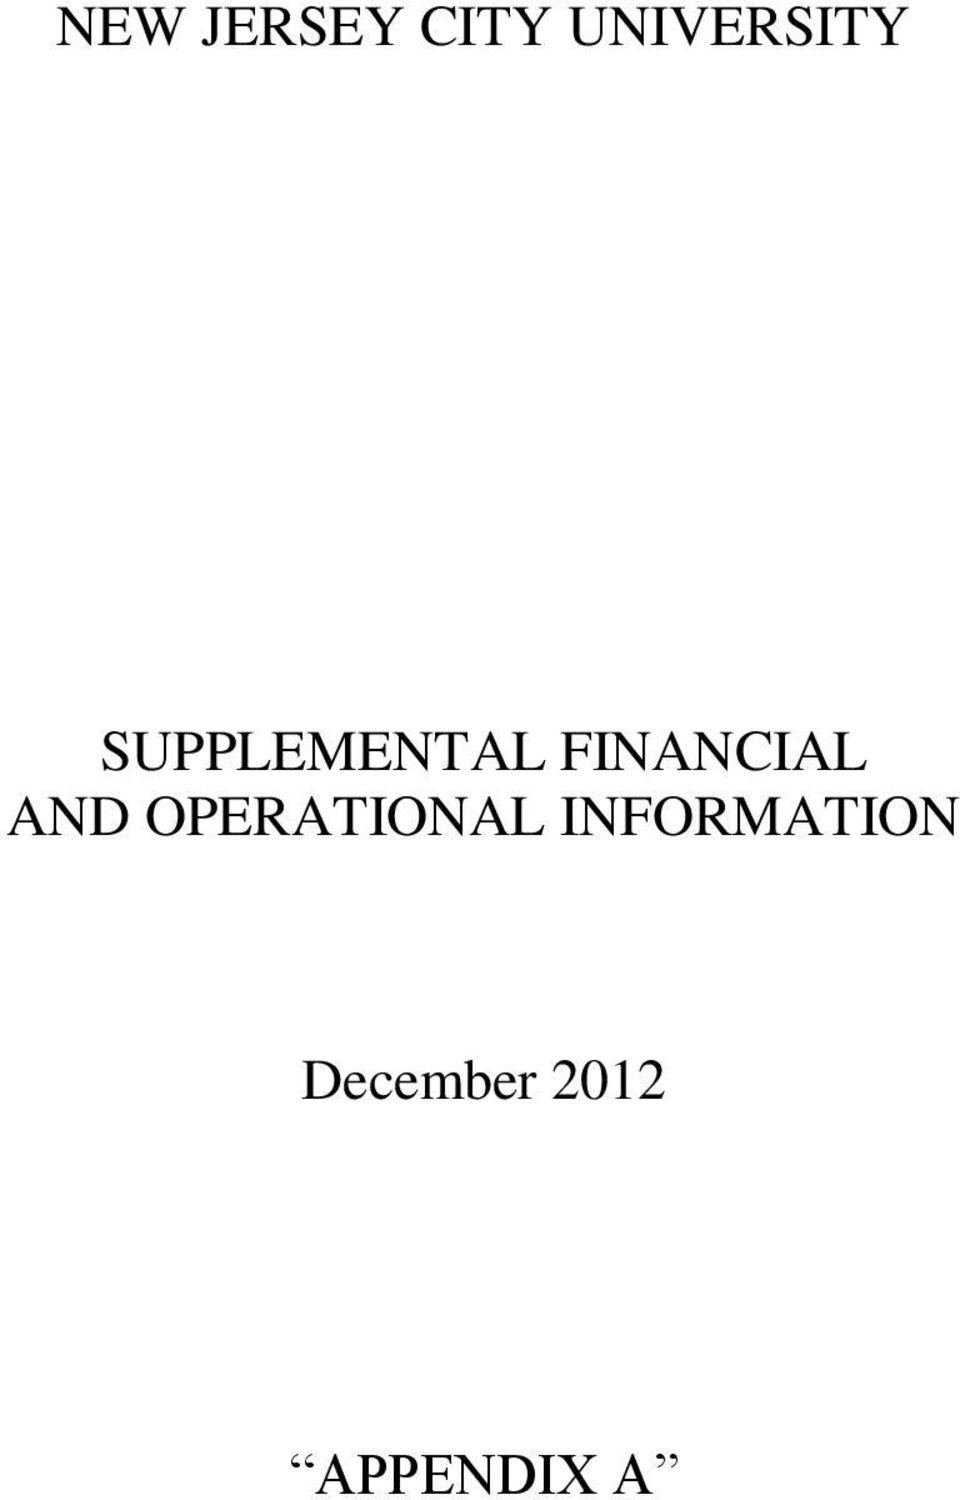 FINANCIAL AND OPERATIONAL